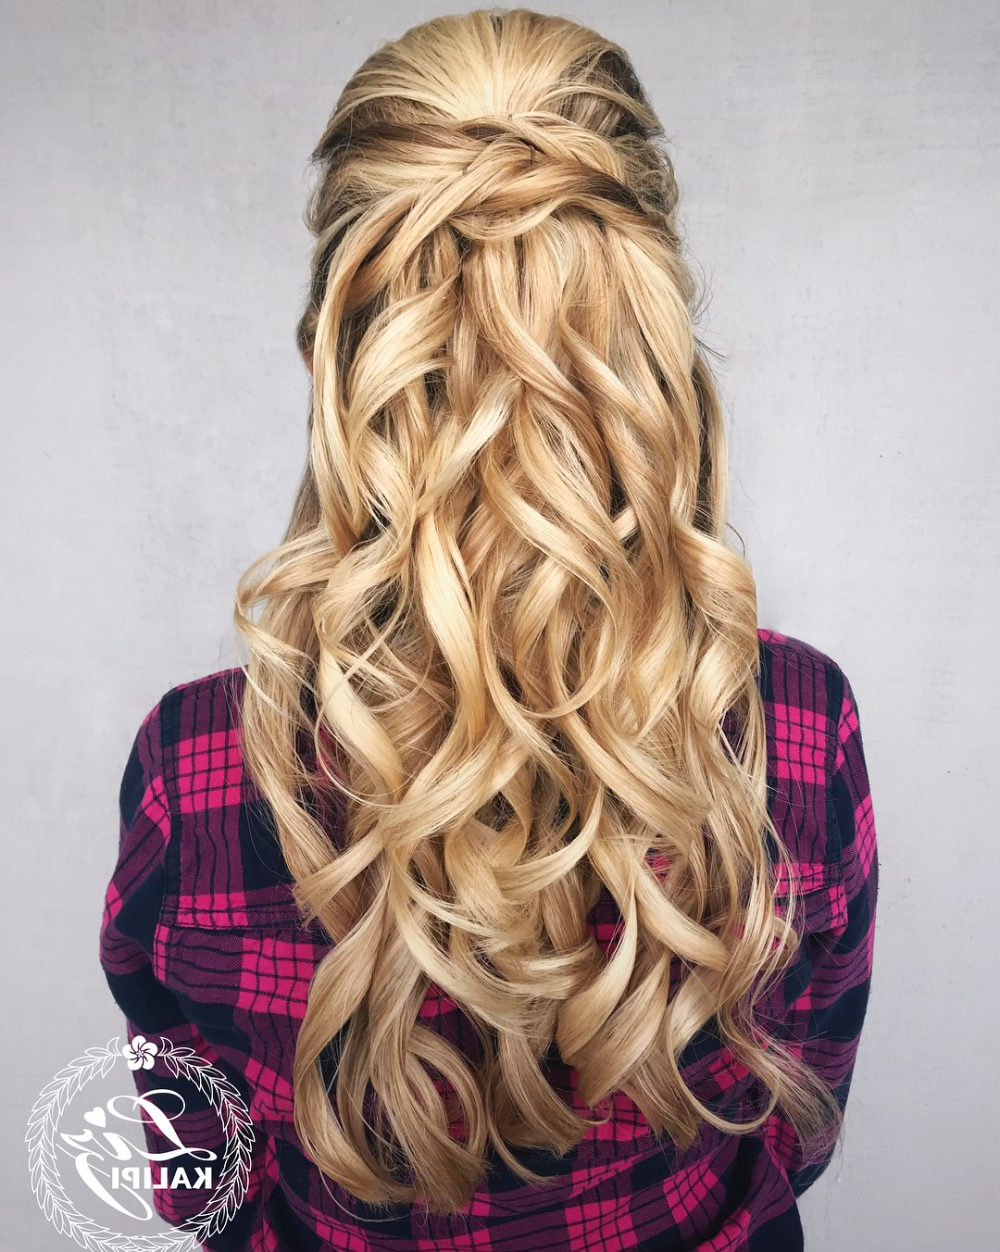 31 Prom Hairstyles For Long Hair That Are Gorgeous In 2019 For Recent Elegant Curled Prom Hairstyles (Gallery 6 of 20)